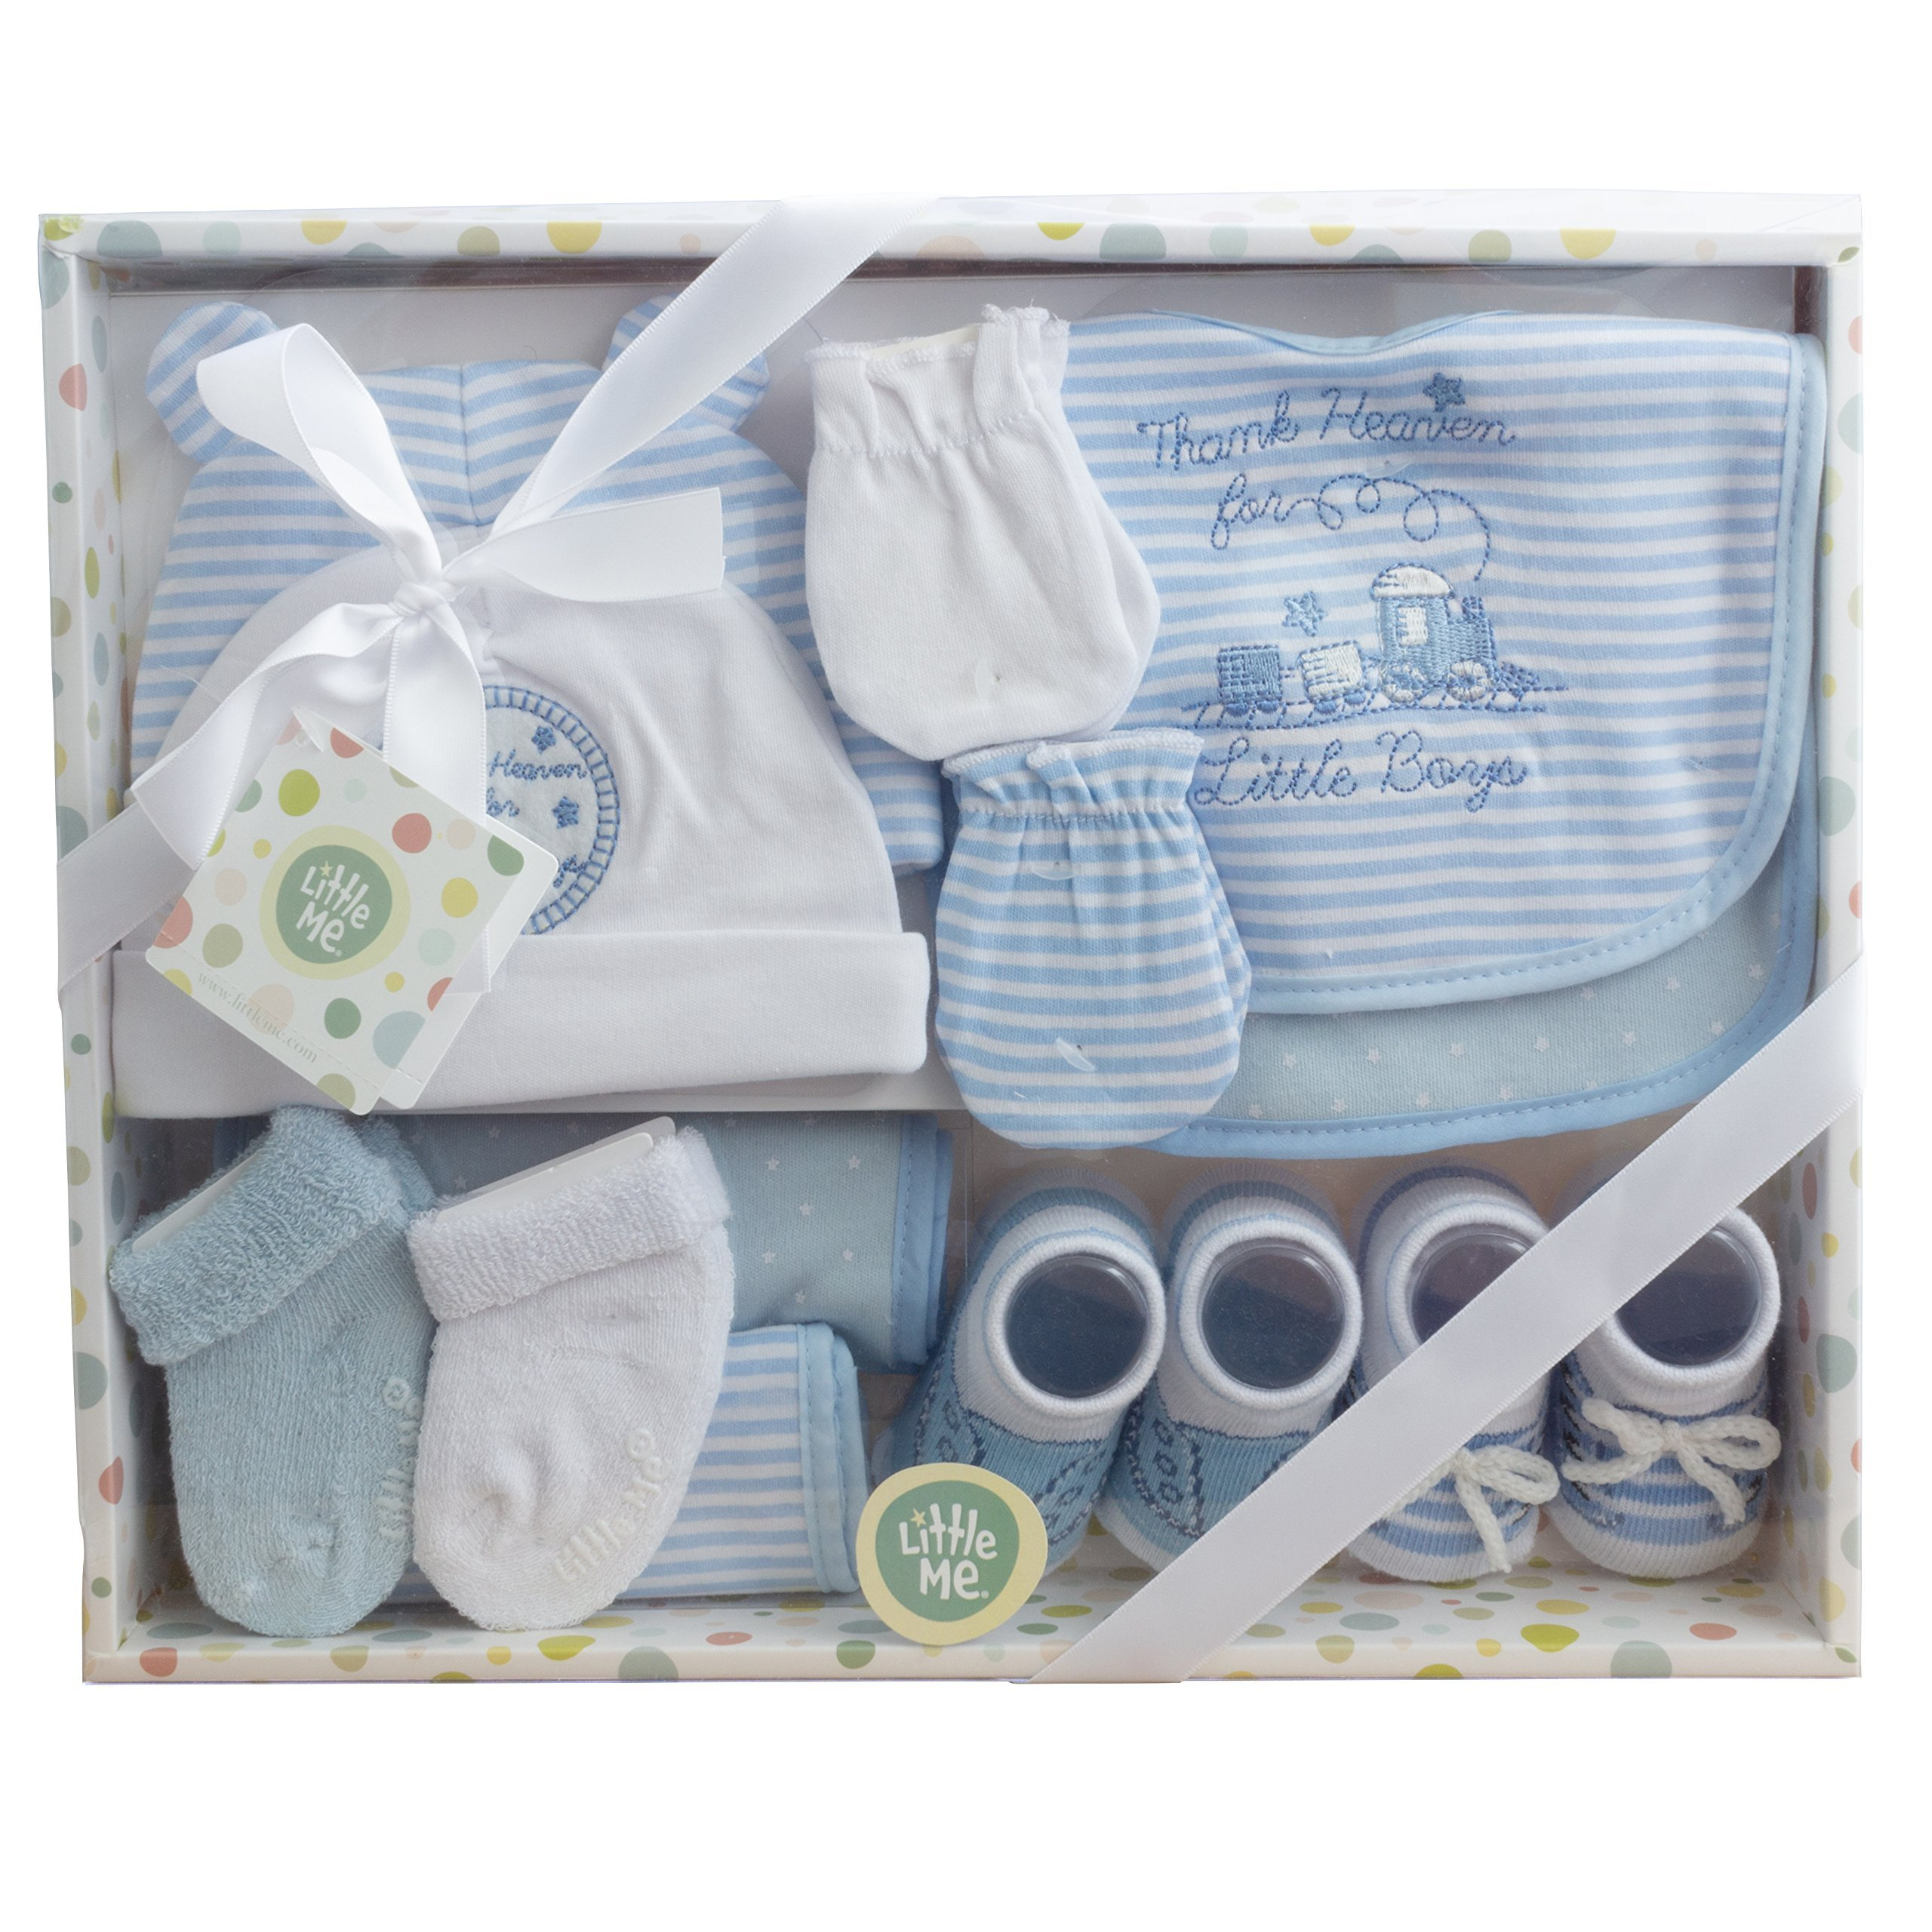 Little Me 12 Piece Newborn Baby Gift Set for Boys- Great Baby Shower or Registry Gift Box to Welcome a New Arrival - All the Essentials